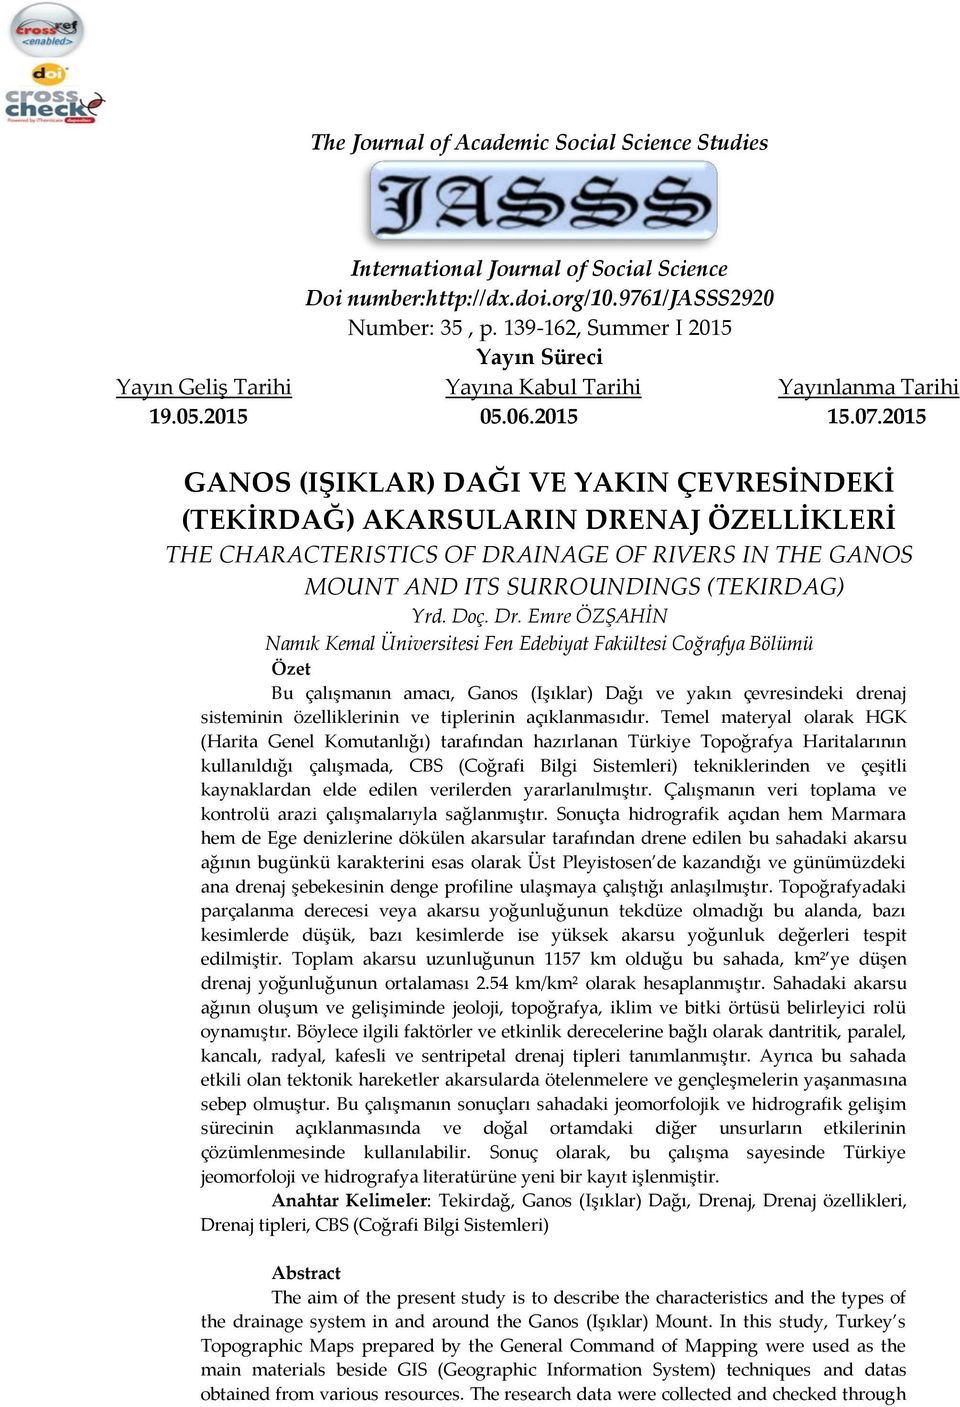 2015 GANOS (IŞIKLAR) DAĞI VE YAKIN ÇEVRESİNDEKİ (TEKİRDAĞ) AKARSULARIN DRENAJ ÖZELLİKLERİ THE CHARACTERISTICS OF DRAINAGE OF RIVERS IN THE GANOS MOUNT AND ITS SURROUNDINGS (TEKIRDAG) Yrd. Doç. Dr.